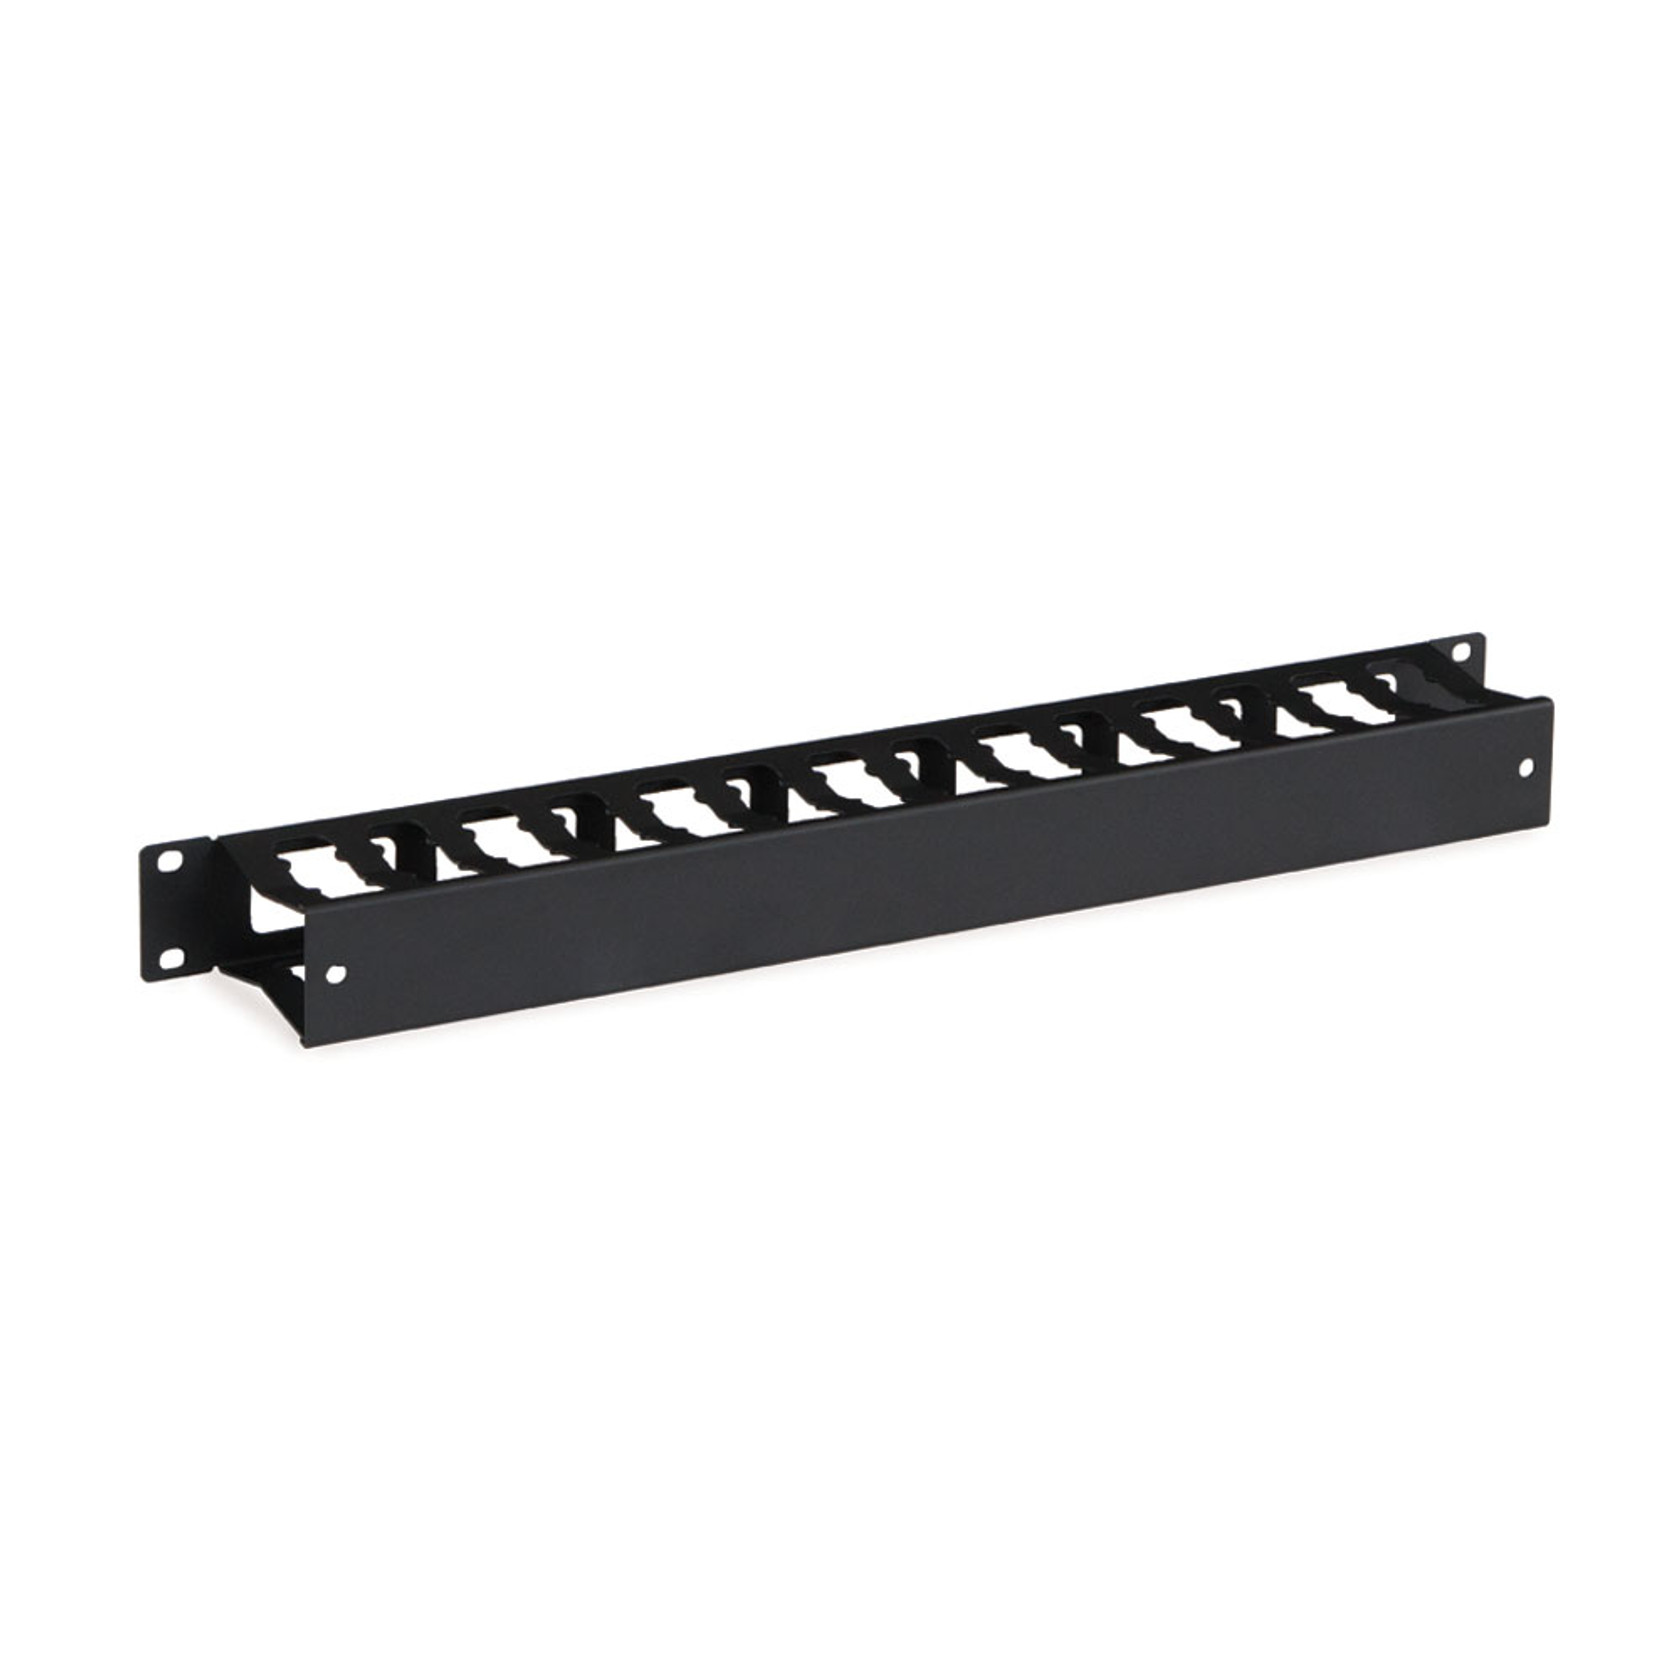 Lot of 5 1U Horizontal Cable Management Unit with Panel Plastic